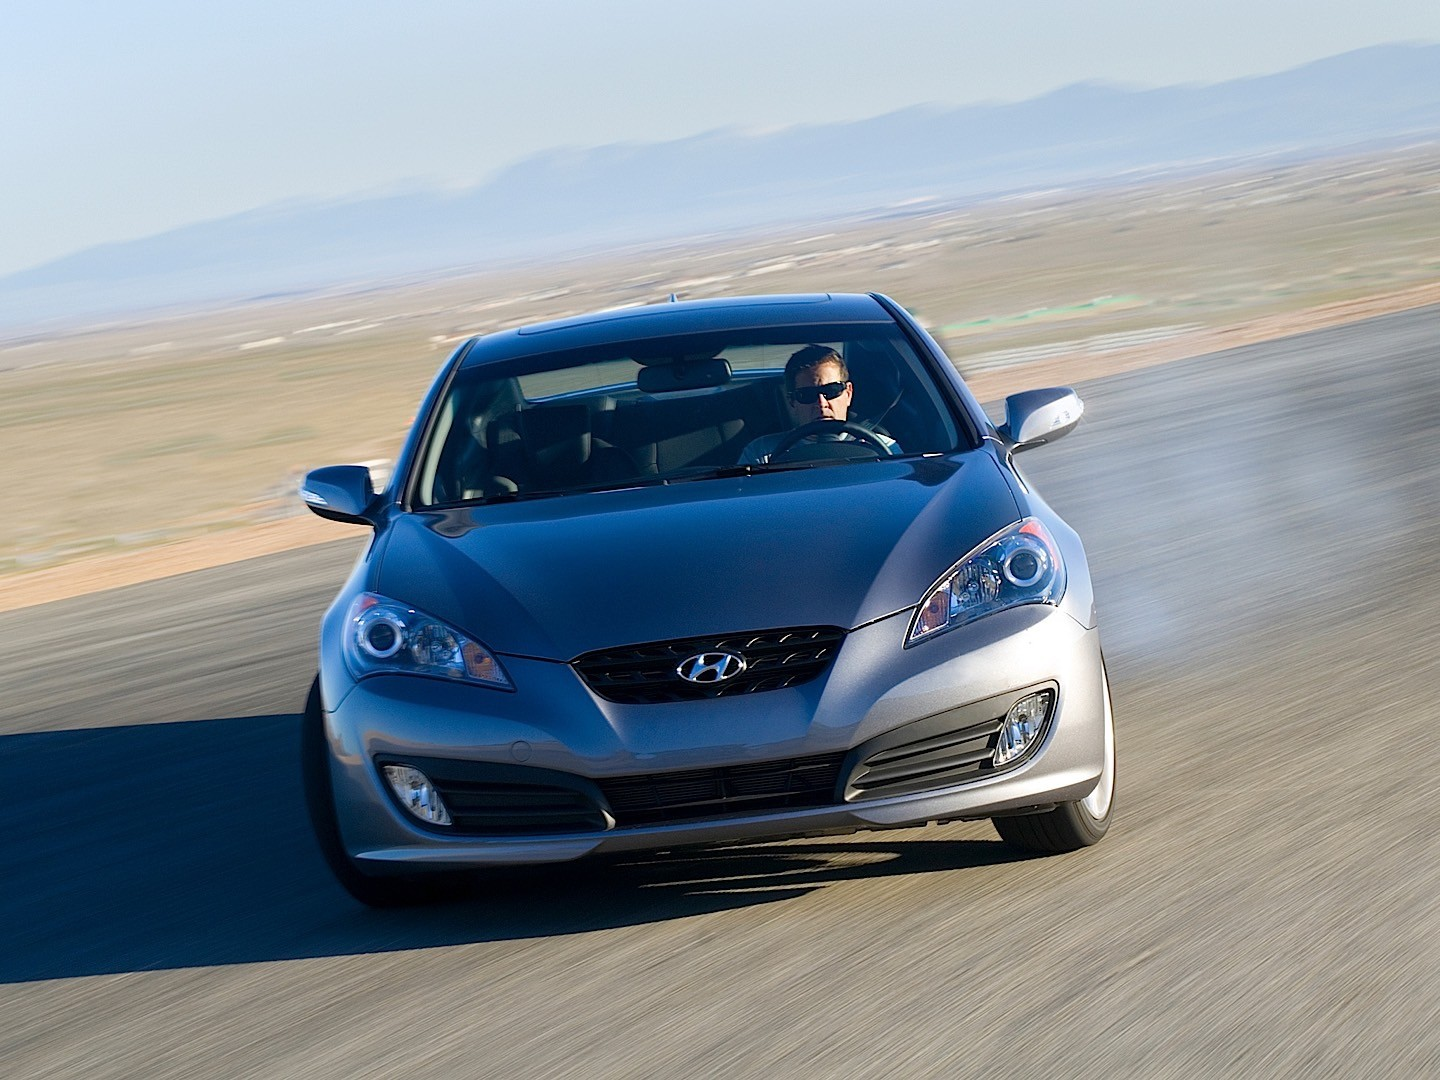 hyundai genesis coupe specs 2008 2009 2010 2011 2012 2013 autoevolution. Black Bedroom Furniture Sets. Home Design Ideas